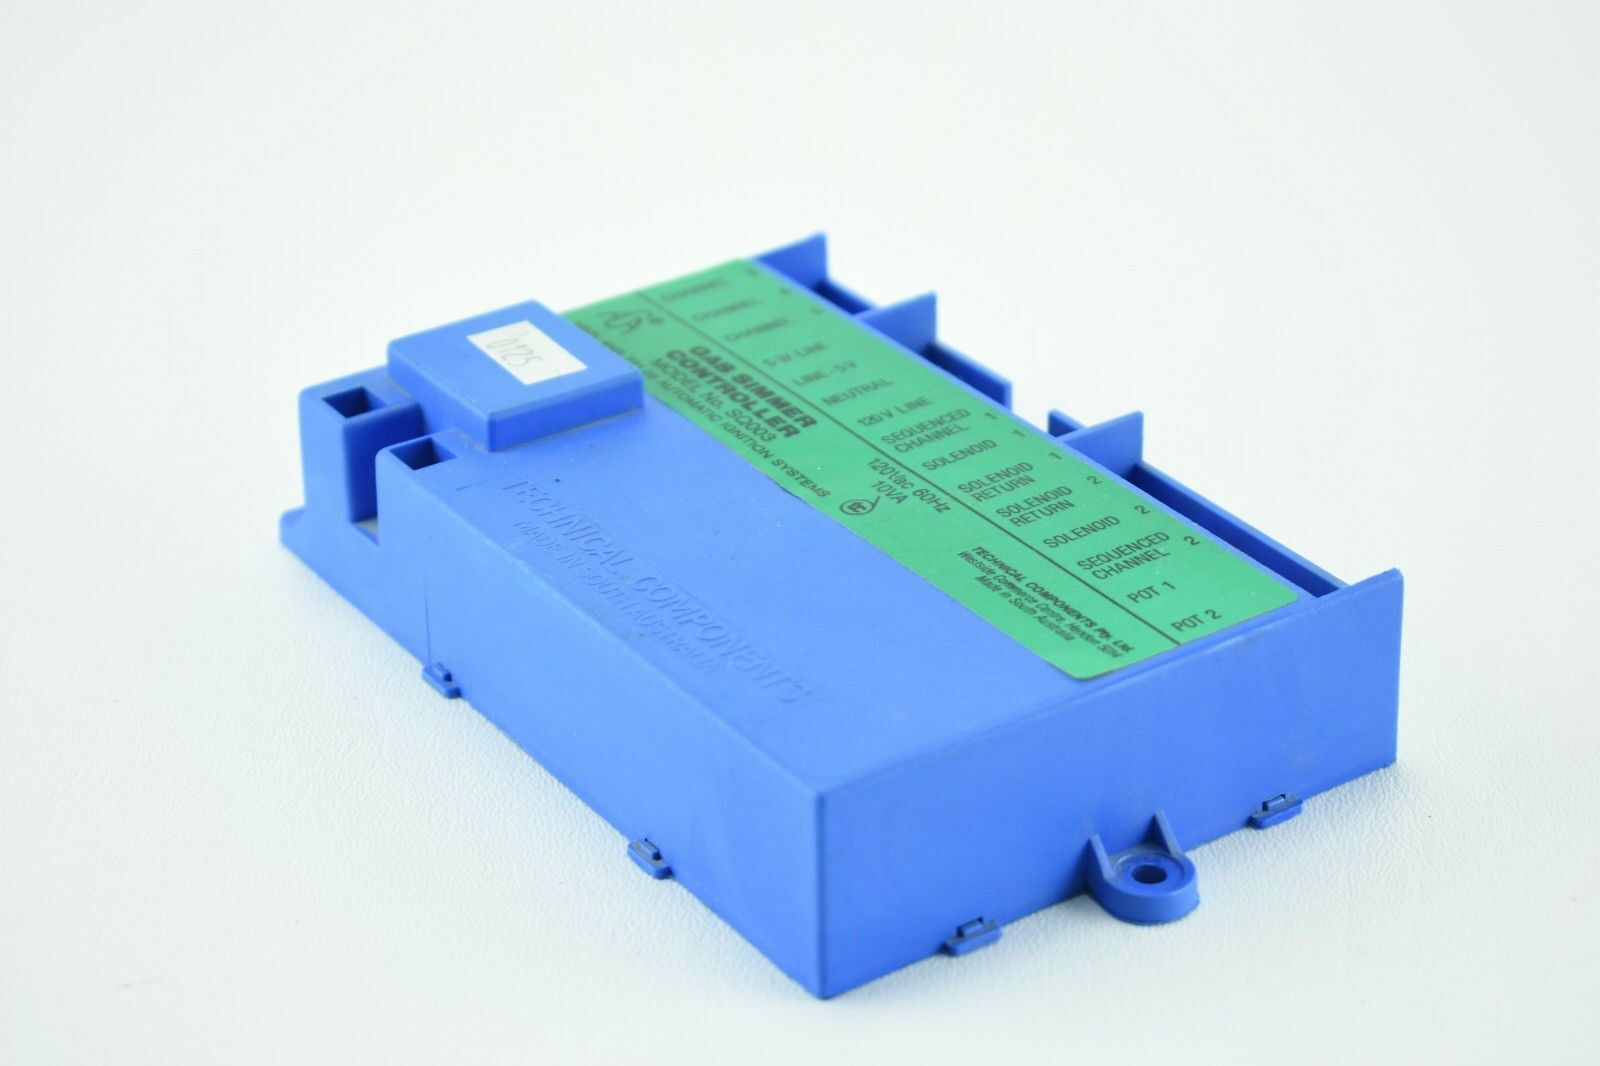 THERMADOR GAS SIMMER CONTROLLER PART SQ003 SPARK IGNITION MODULE REPAIR SERVICE - $349.00